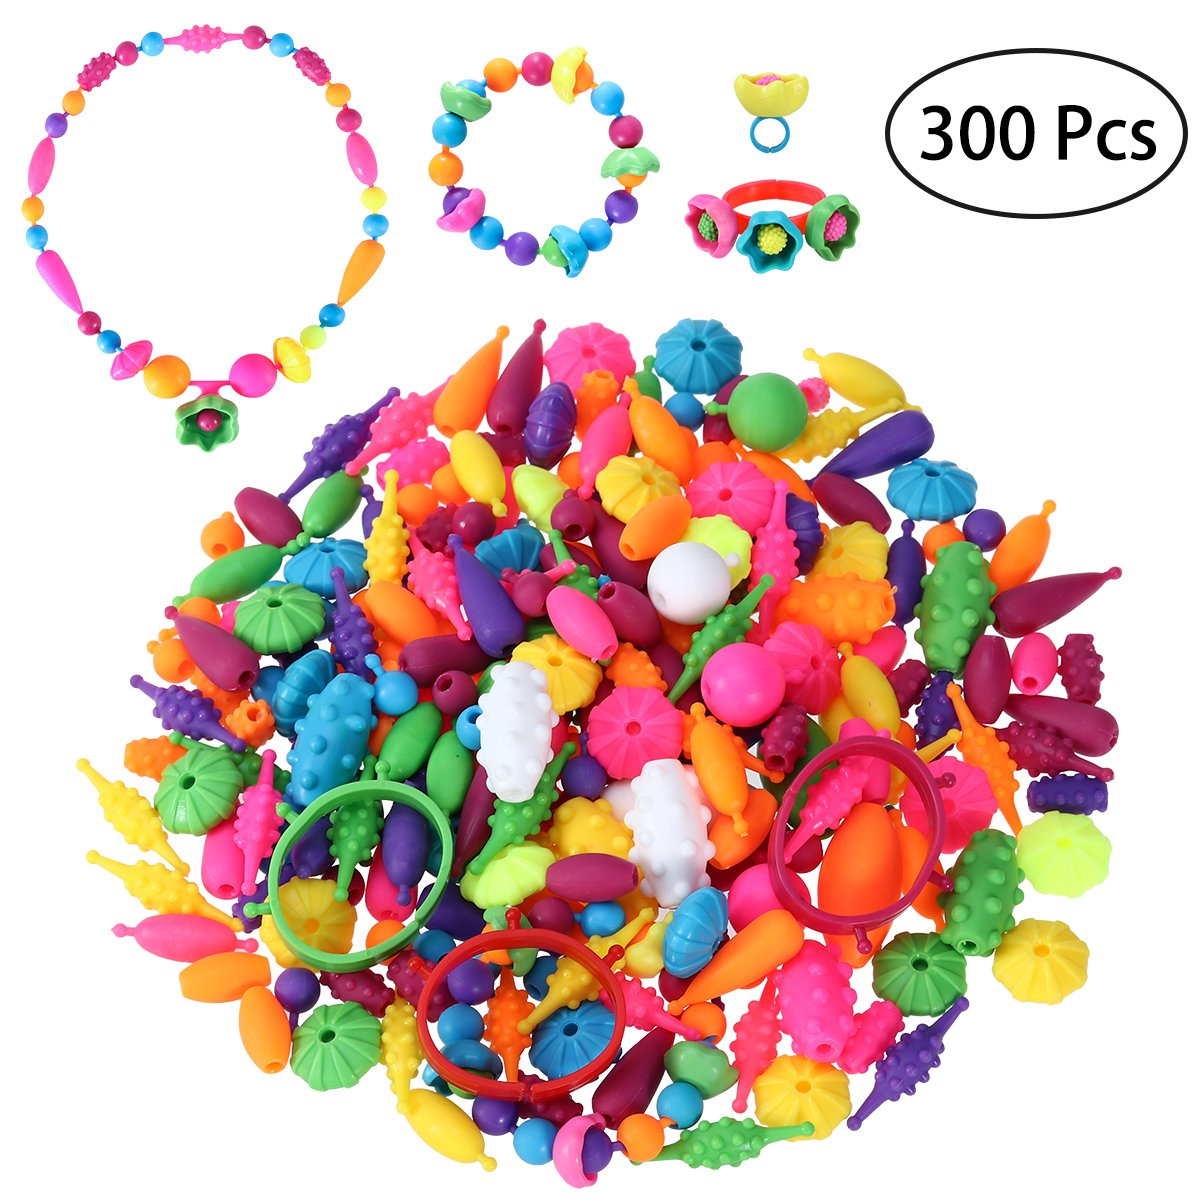 TOYMYTOY 300Pcs Pop Snap Beads Set Creative DIY Necklace Bracelet Jewelry Making Kit for Girls Art Crafts Educational Toys Gifts